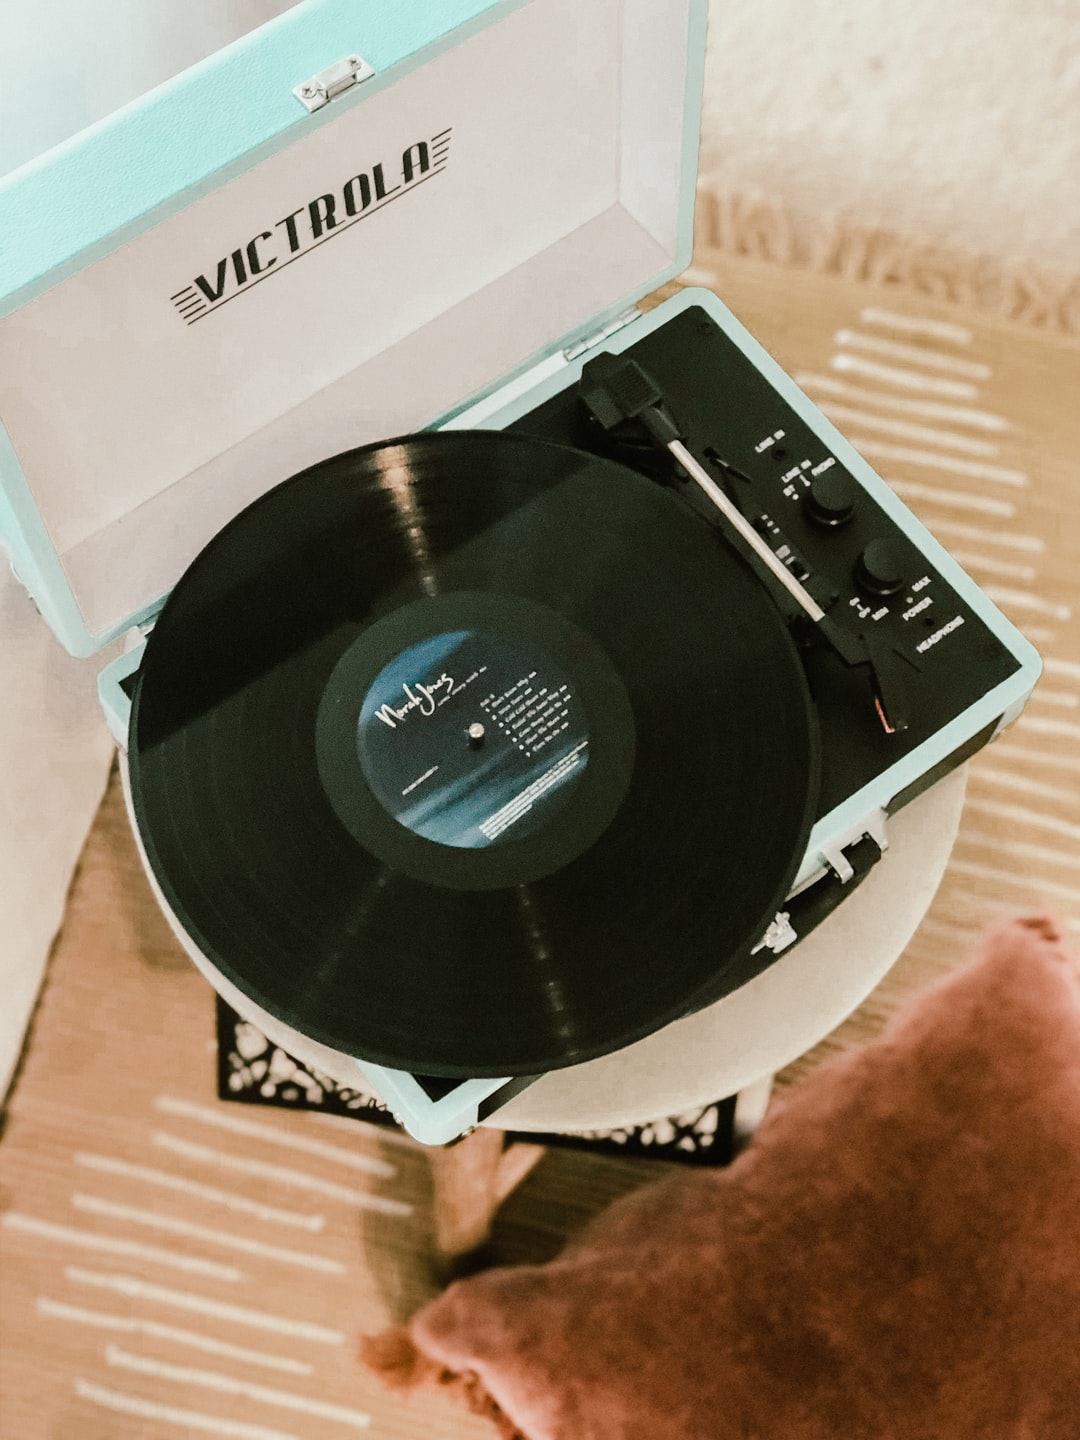 Victrola turquoise suitcase record player playing a black record in a bedroom.